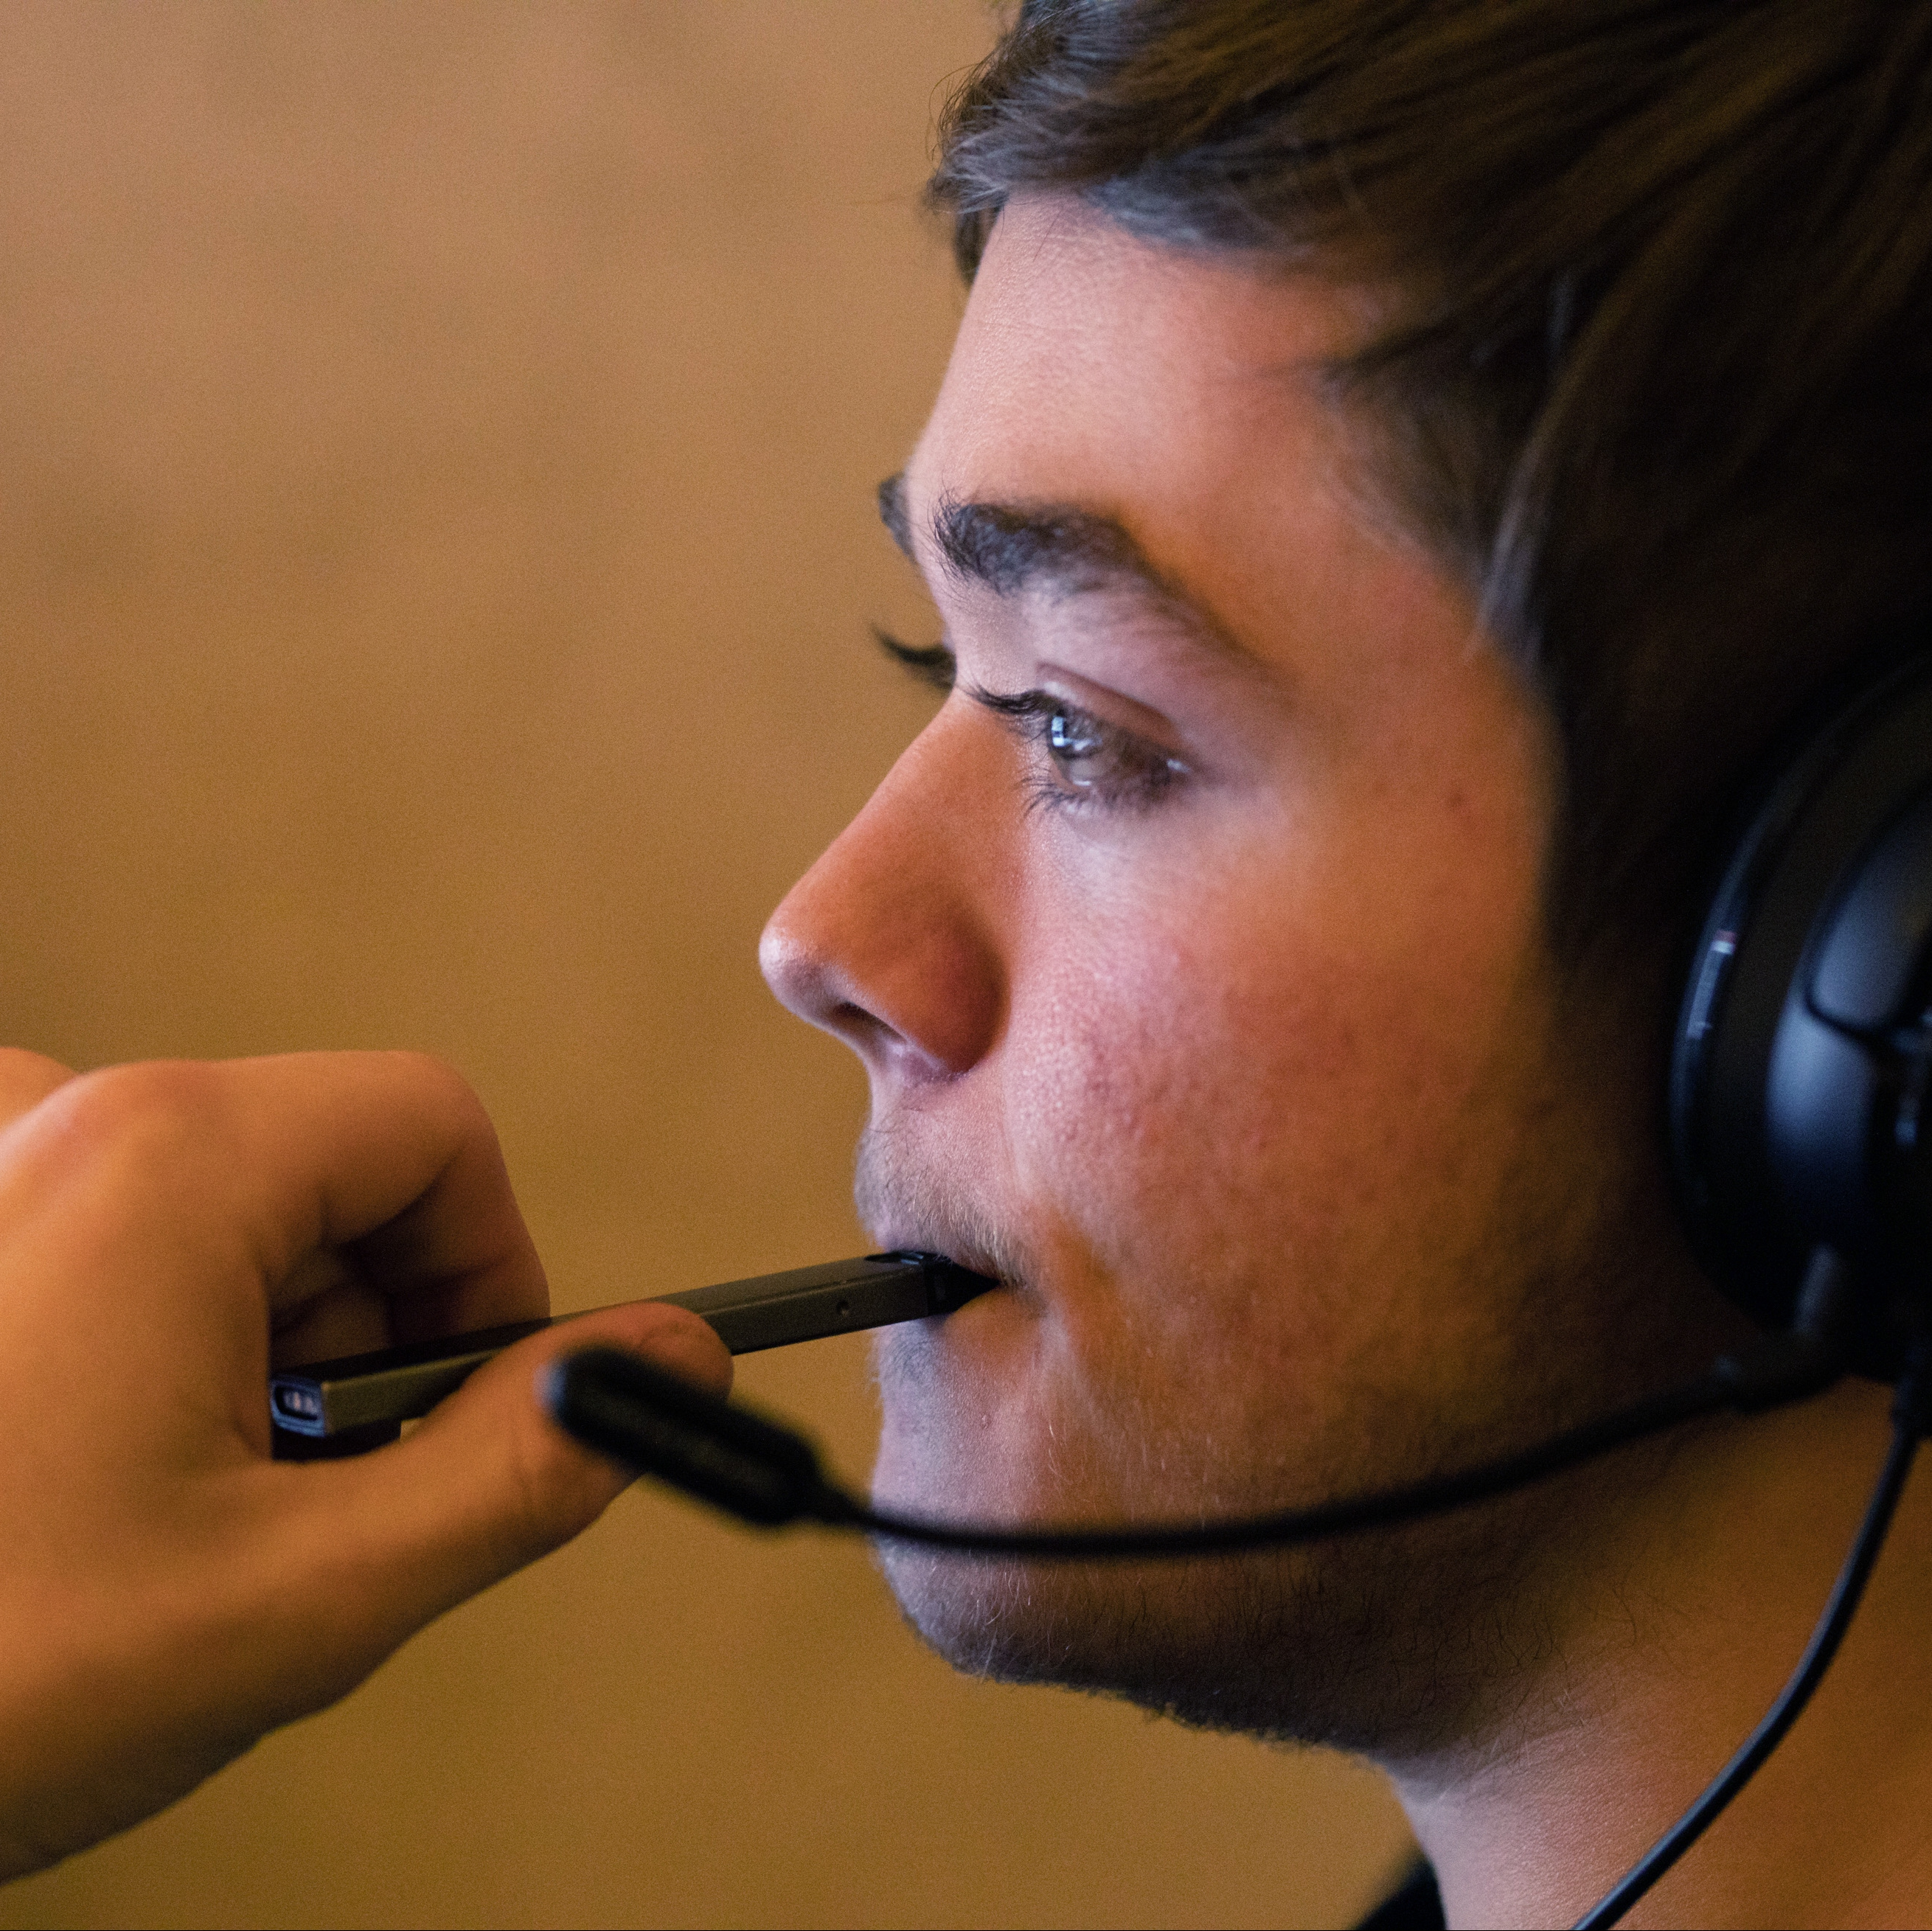 a young man vaping while playing a video game